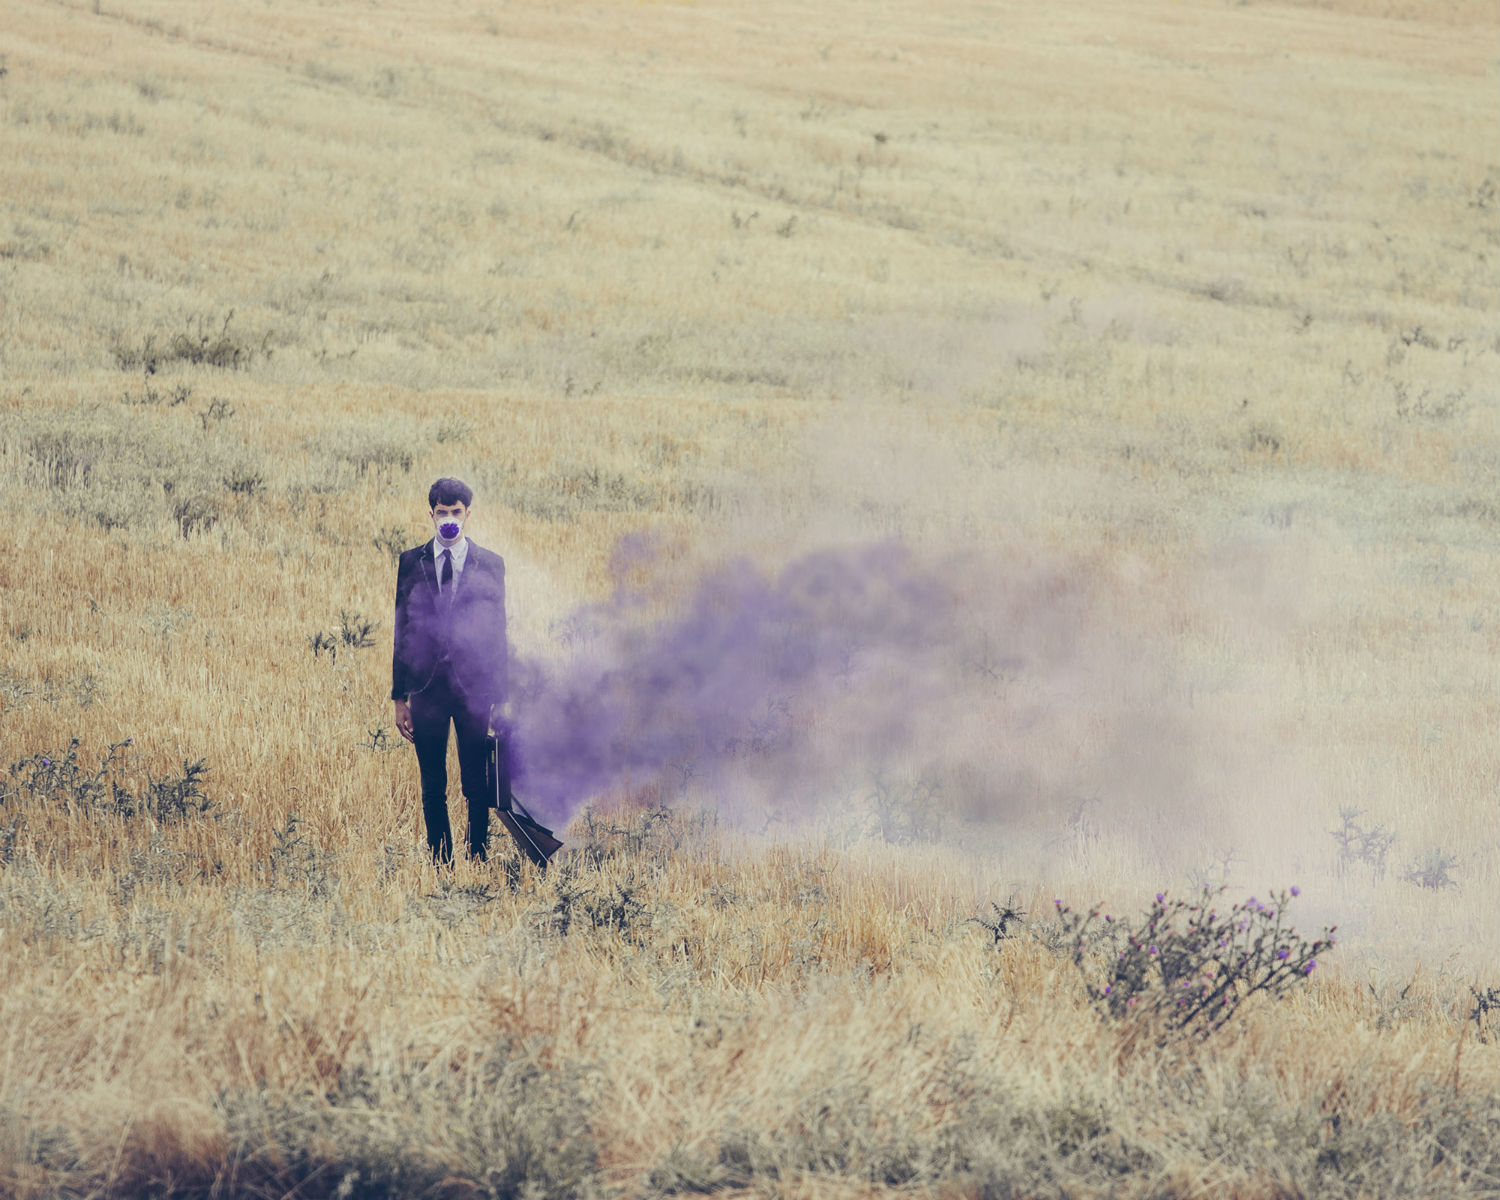 jairo alvarez photography surreal imagery colour odd illusion purple smoke